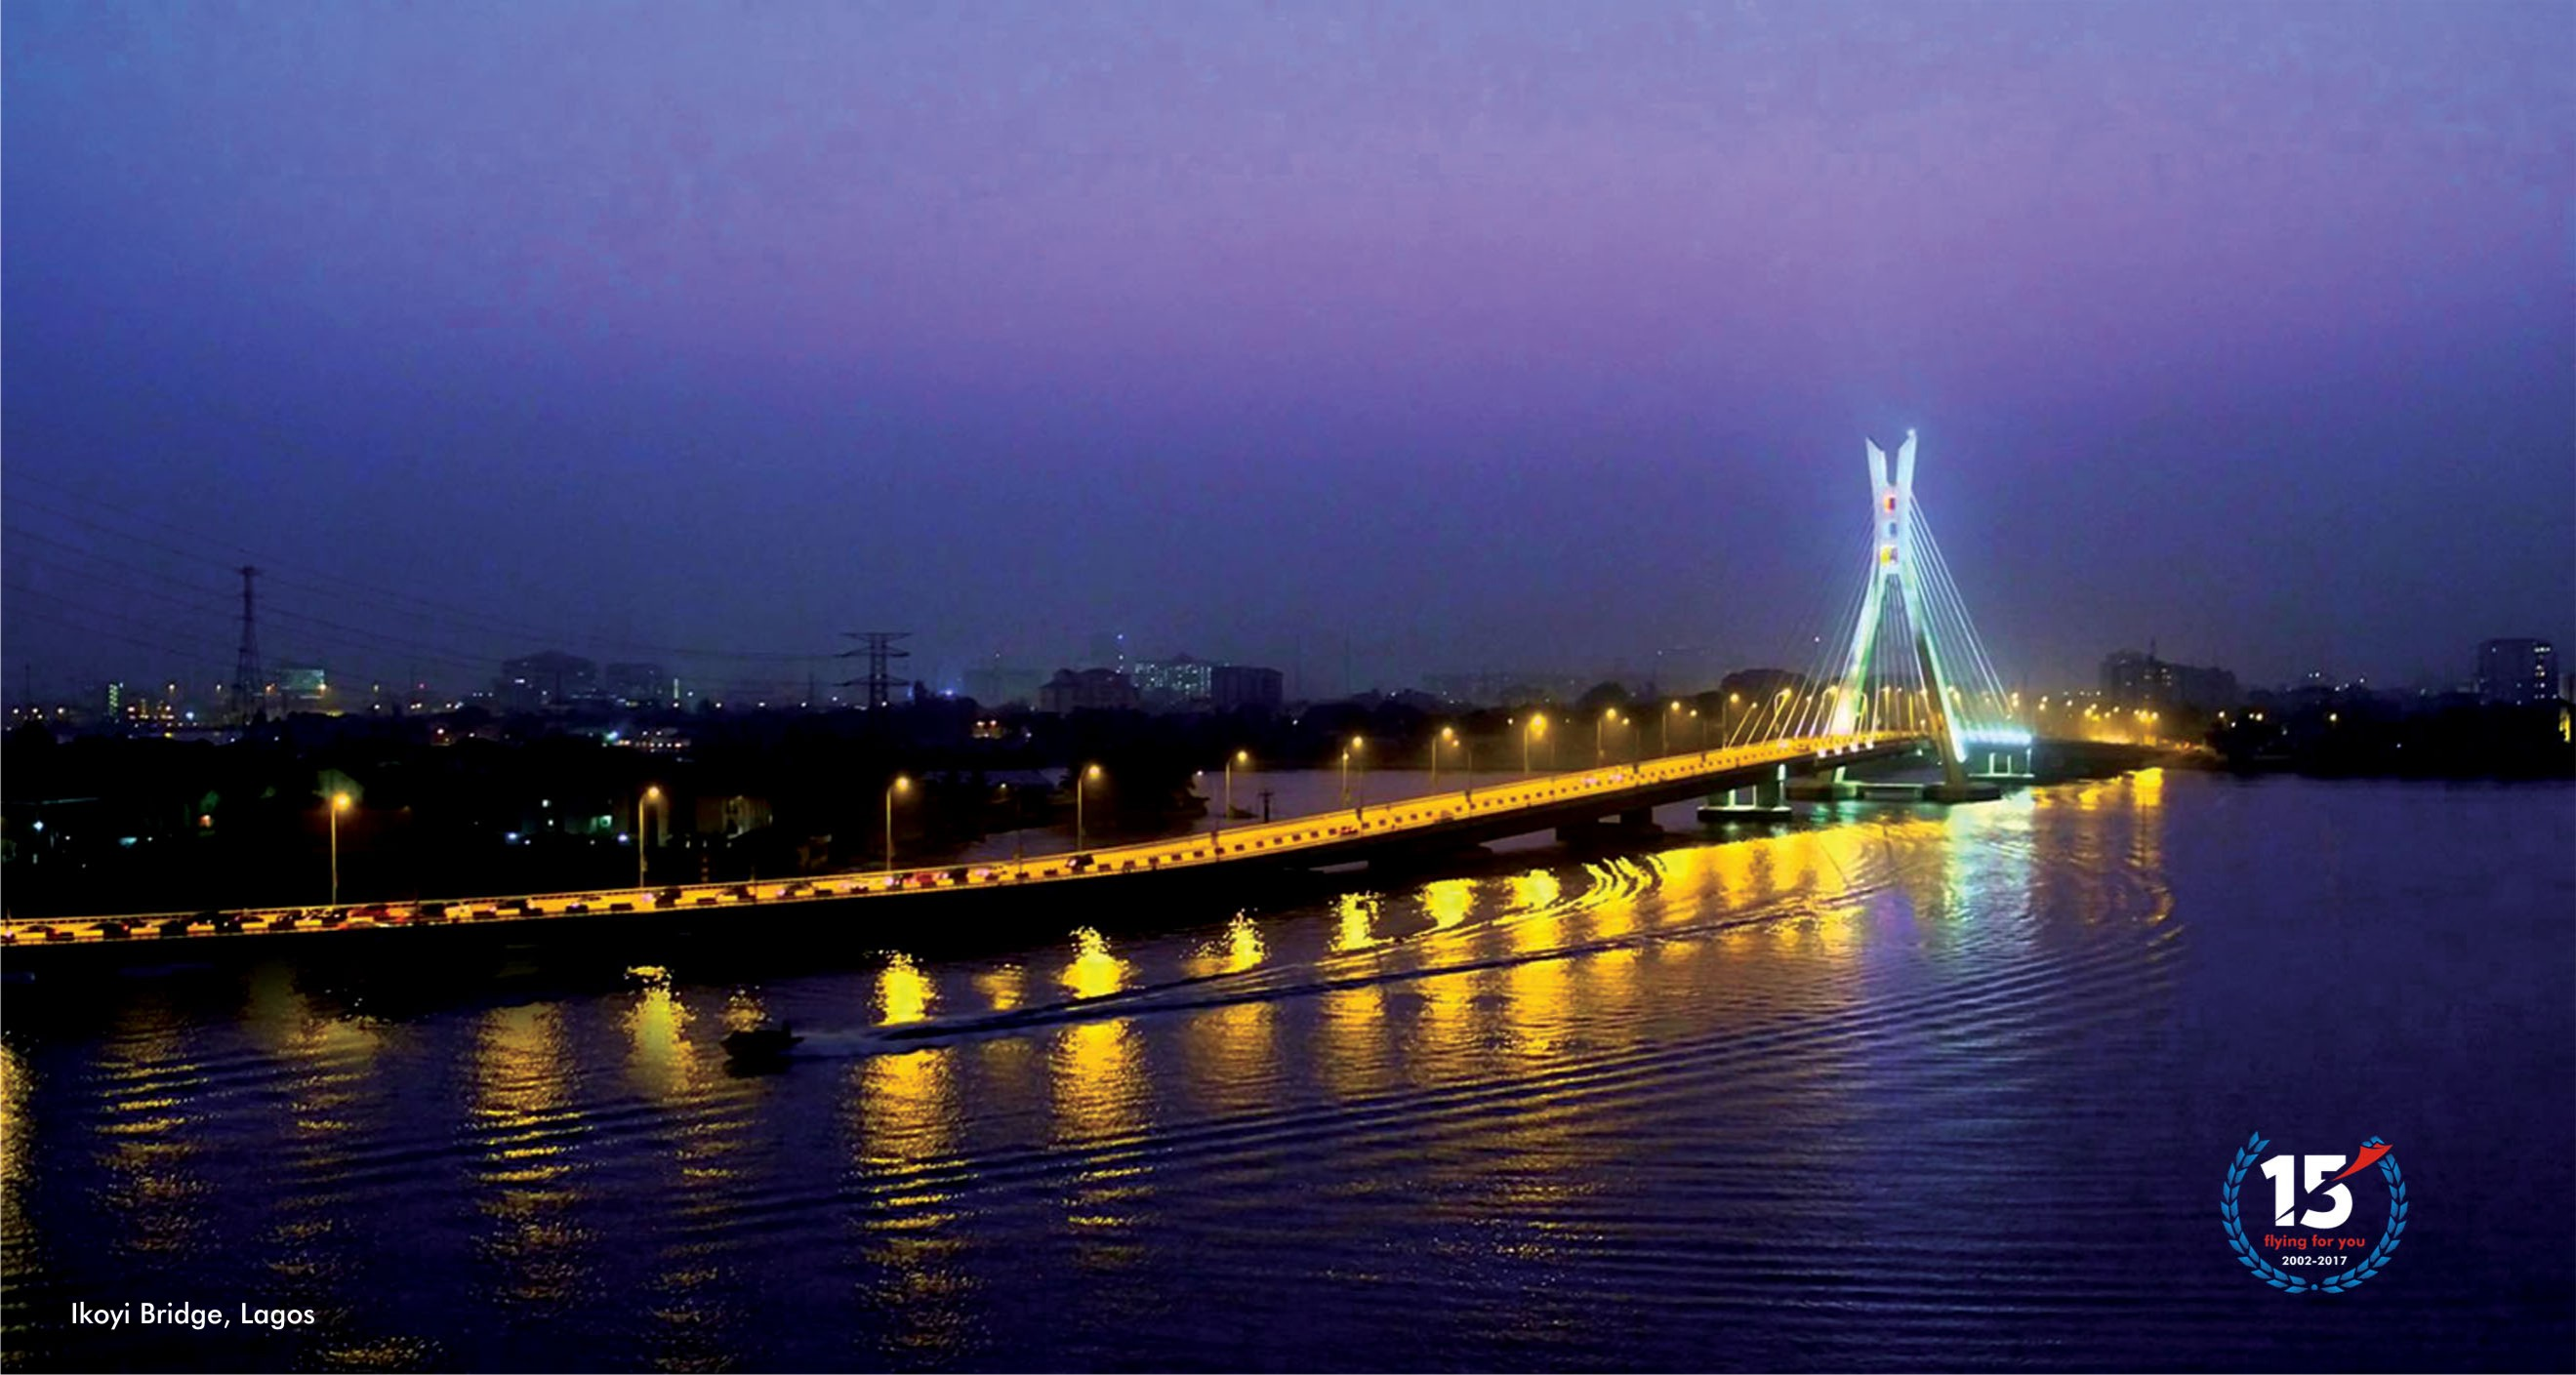 Ikoyi bridge Lagos